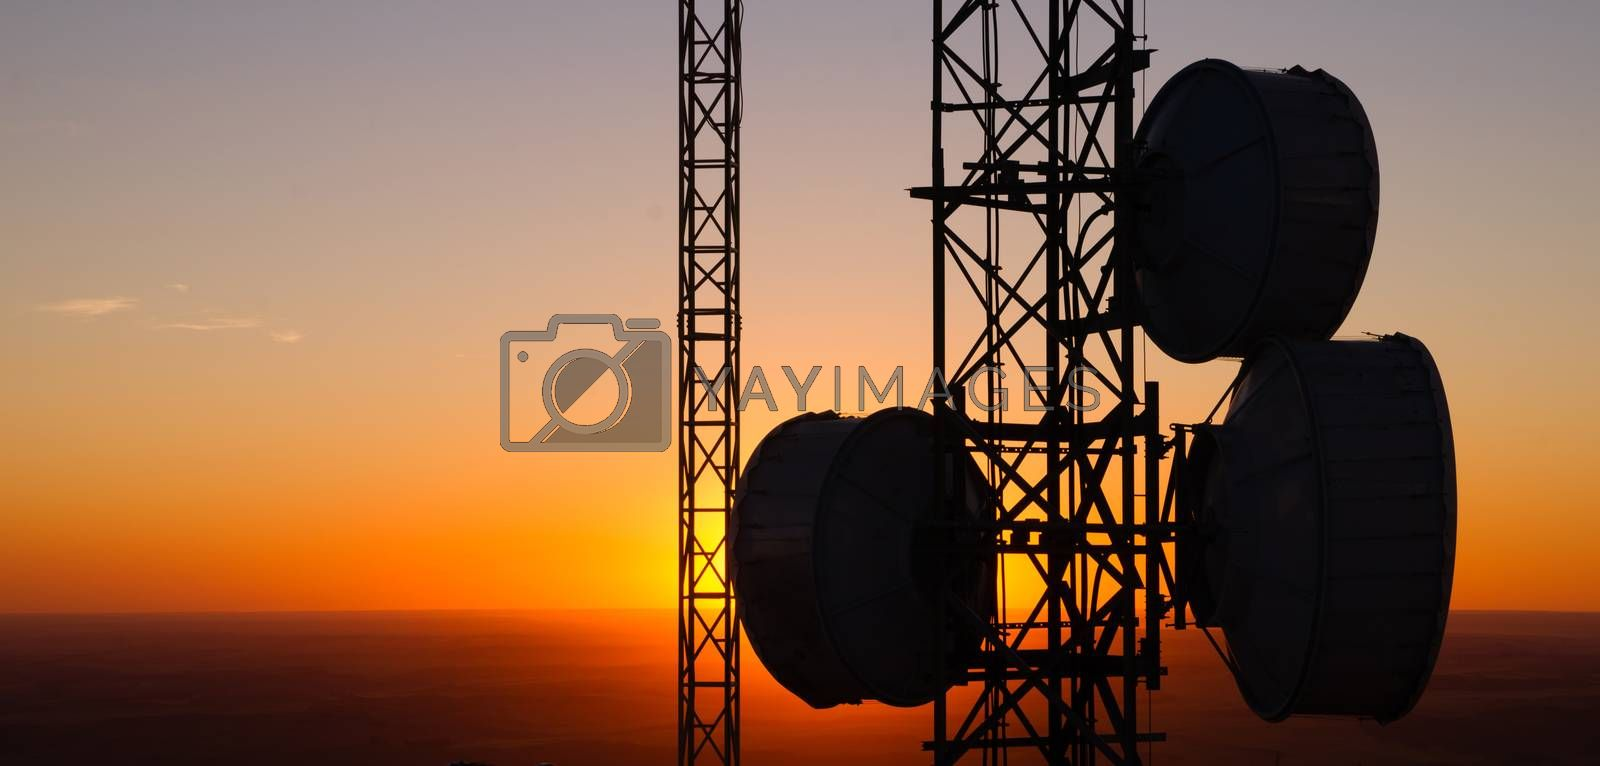 This Cellular Tower is situated high off the ground in Eastern Washington